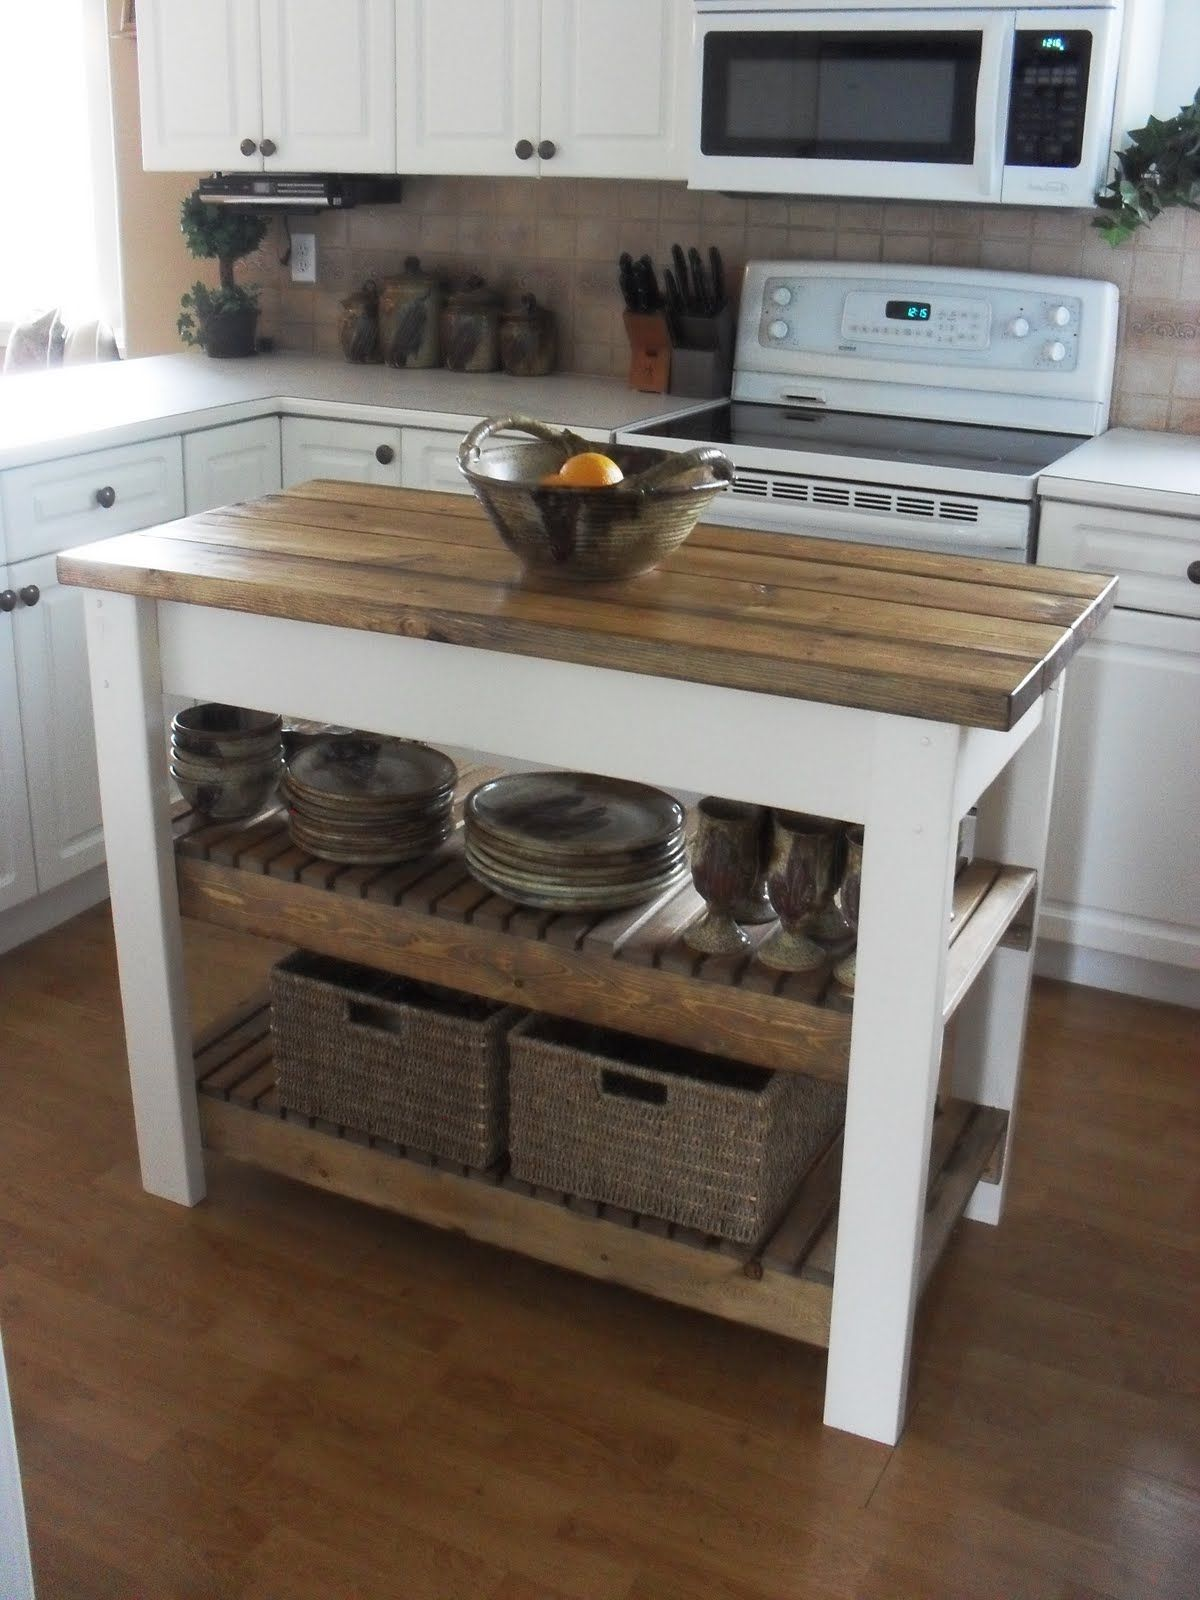 Portable kitchen island designs - 15 Do It Yourself Hacks And Clever Ideas To Upgrade Your Kitchen 10